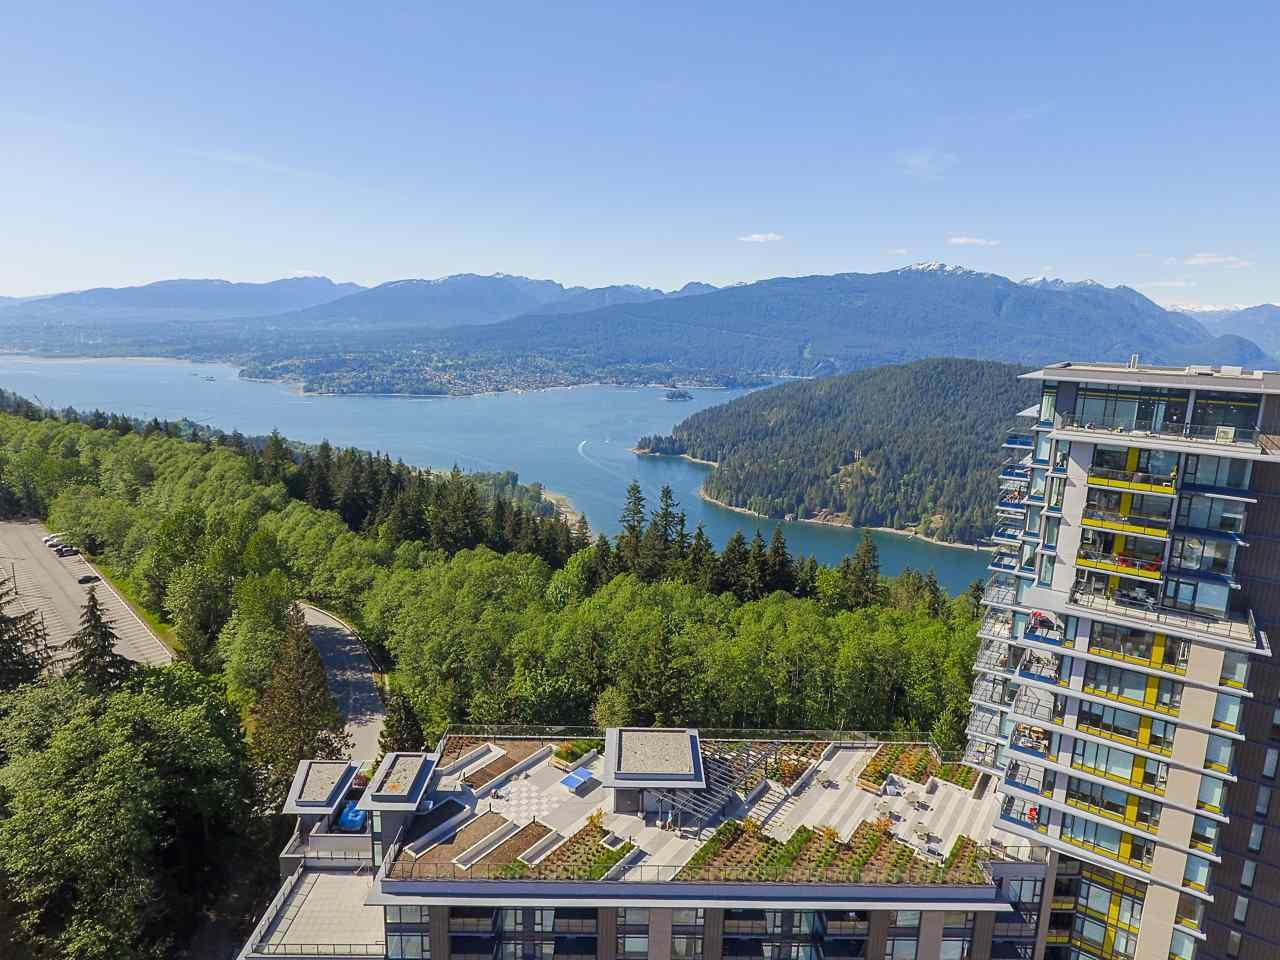 Main Photo: 1507 8850 UNIVERSITY CRESCENT in Burnaby: Simon Fraser Univer. Condo for sale (Burnaby North)  : MLS®# R2416972